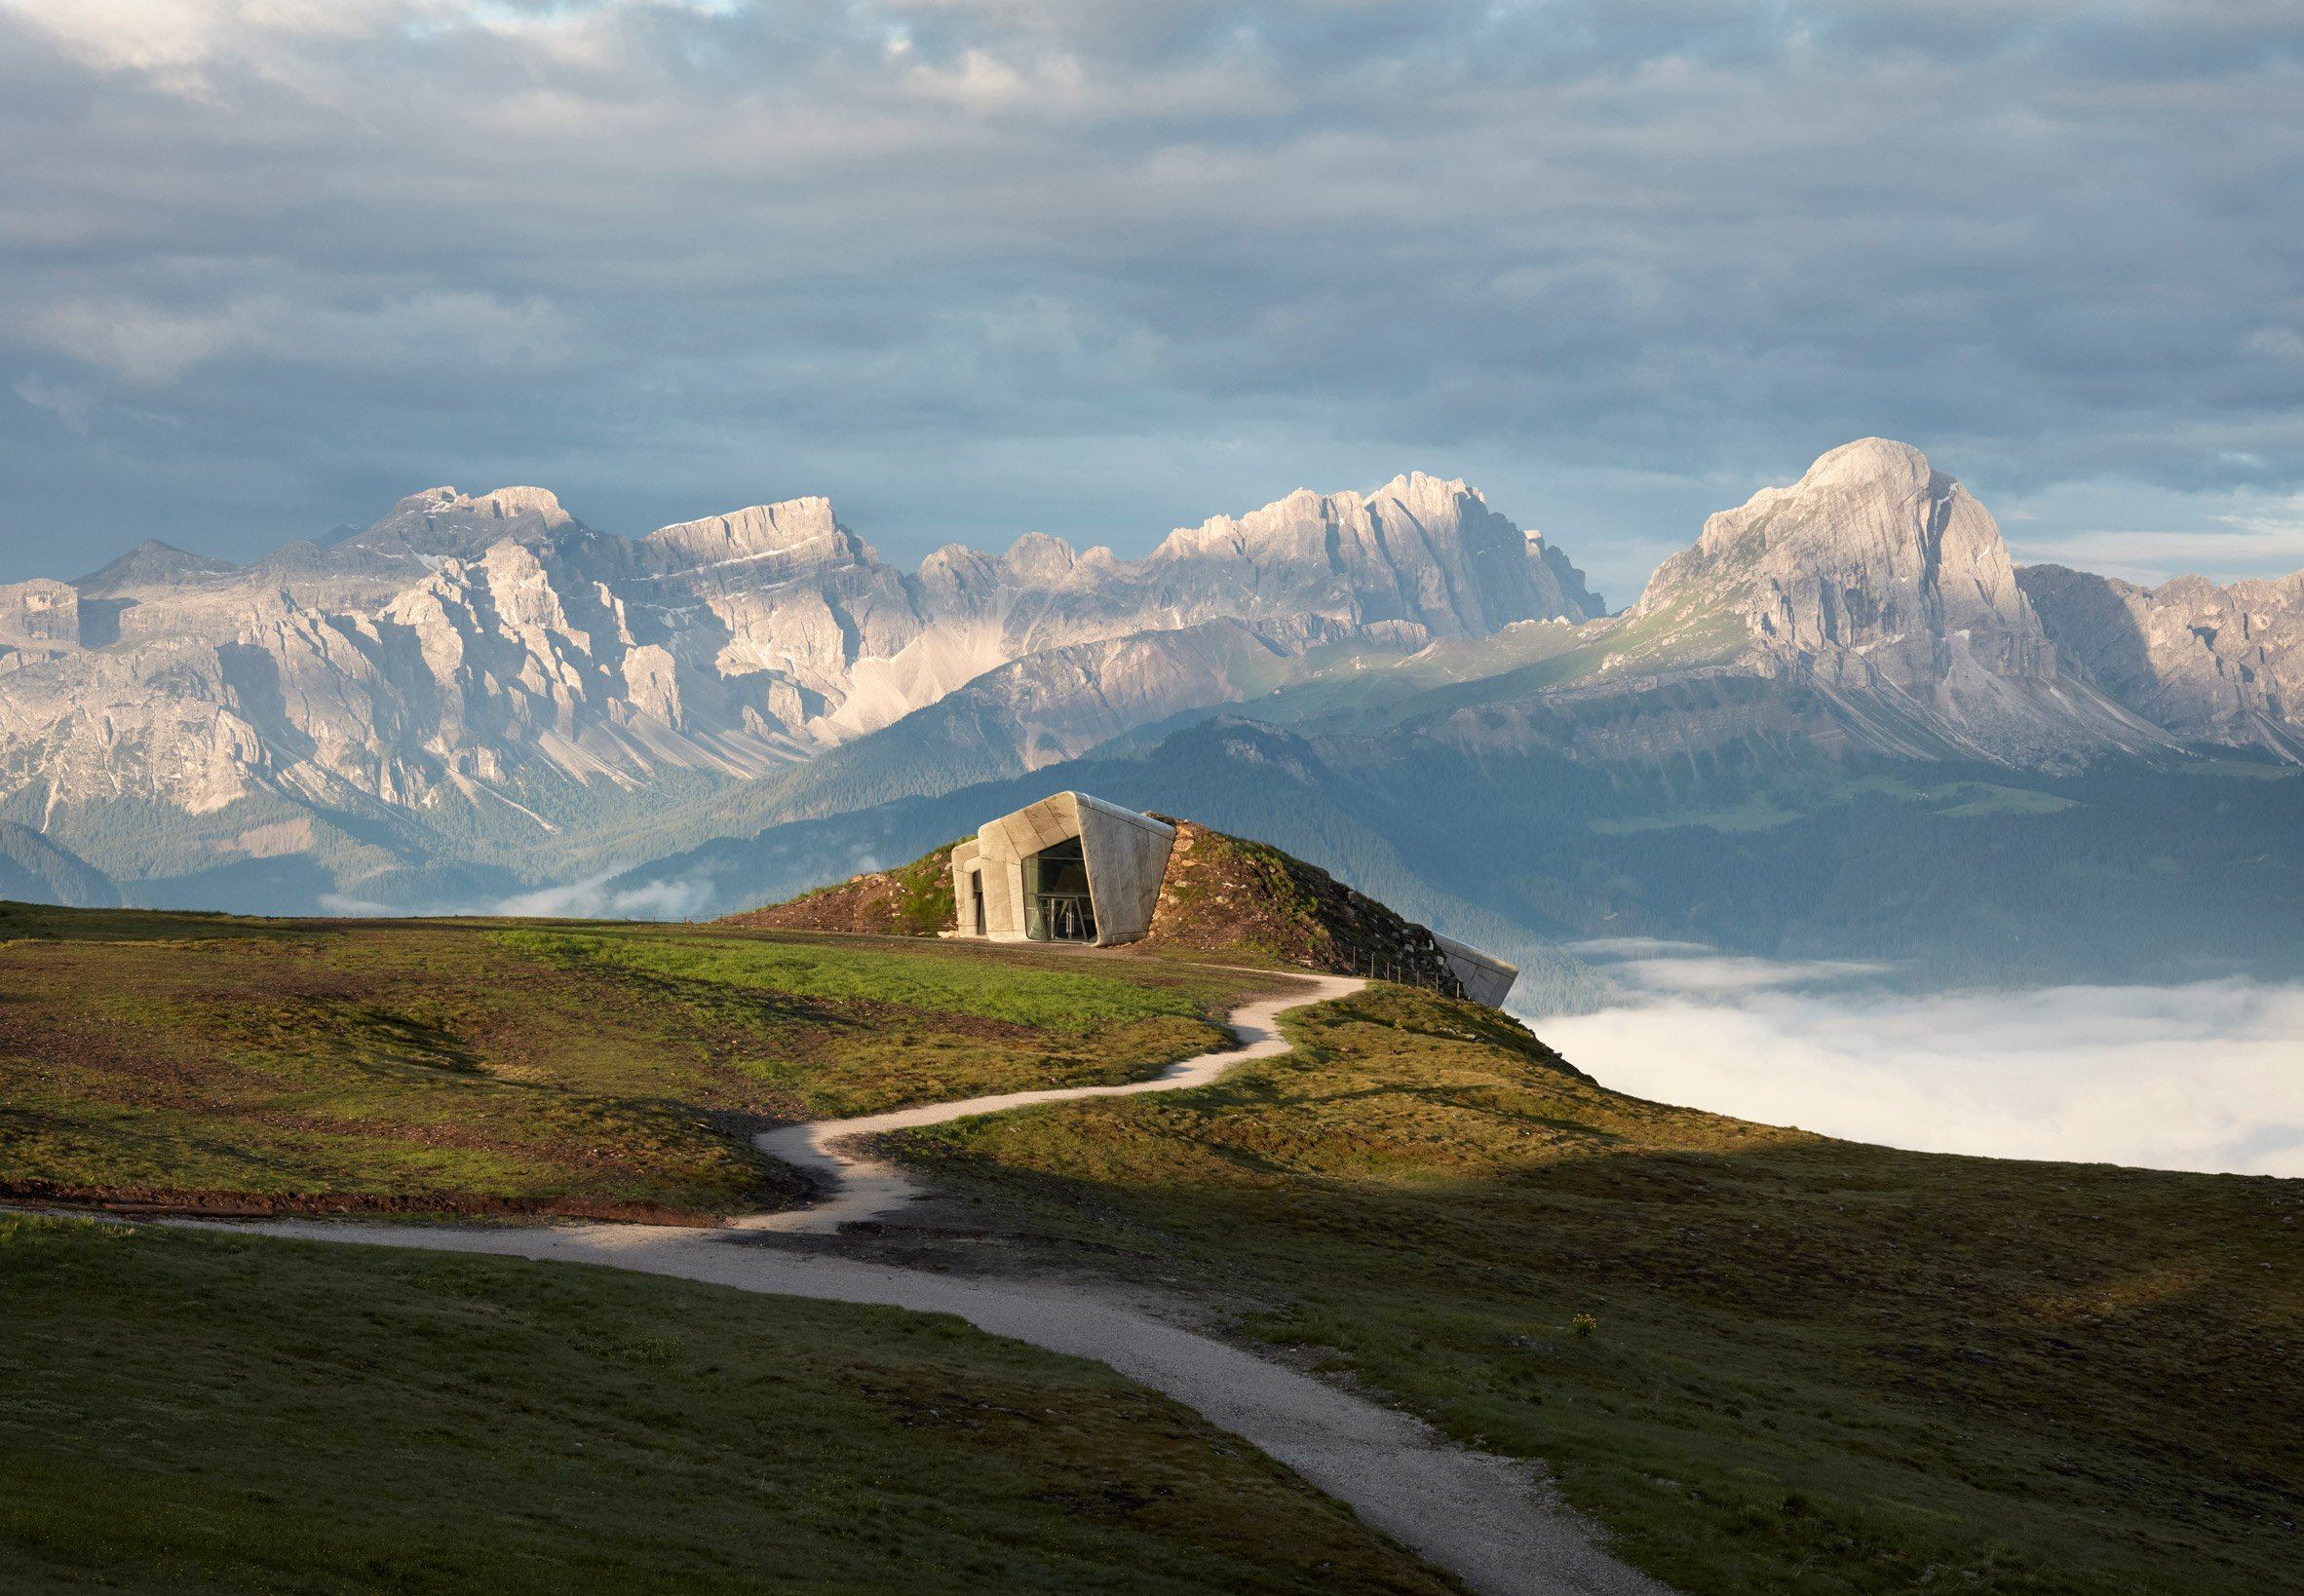 Messner Mountain Museum Corones, South Tyrol, Italy, by Zaha Hadid Architects